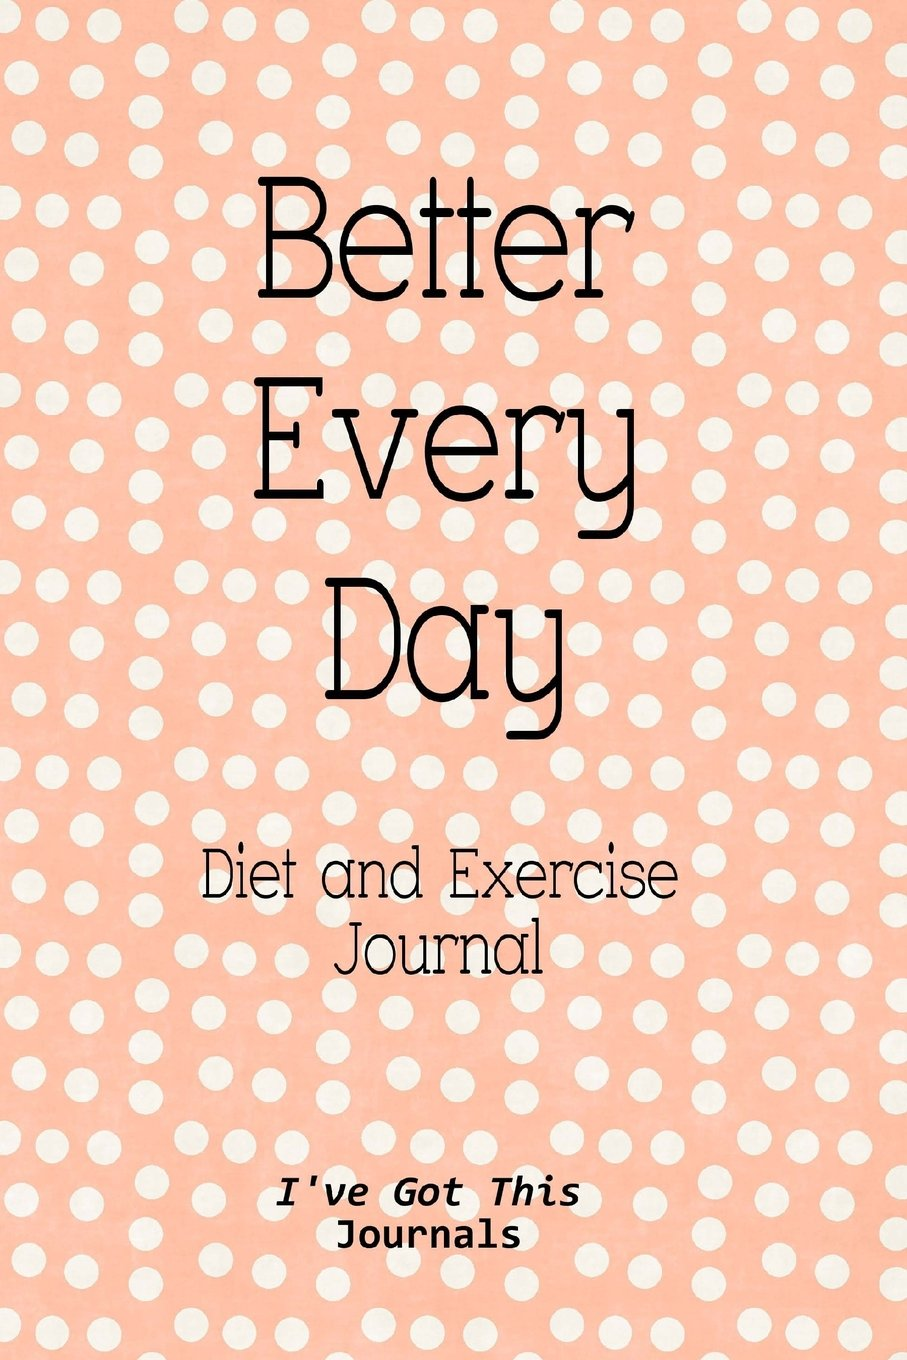 Download Diet and Exercise Journal: Better Every Day (I've Got This Journals) (Volume 7) pdf epub